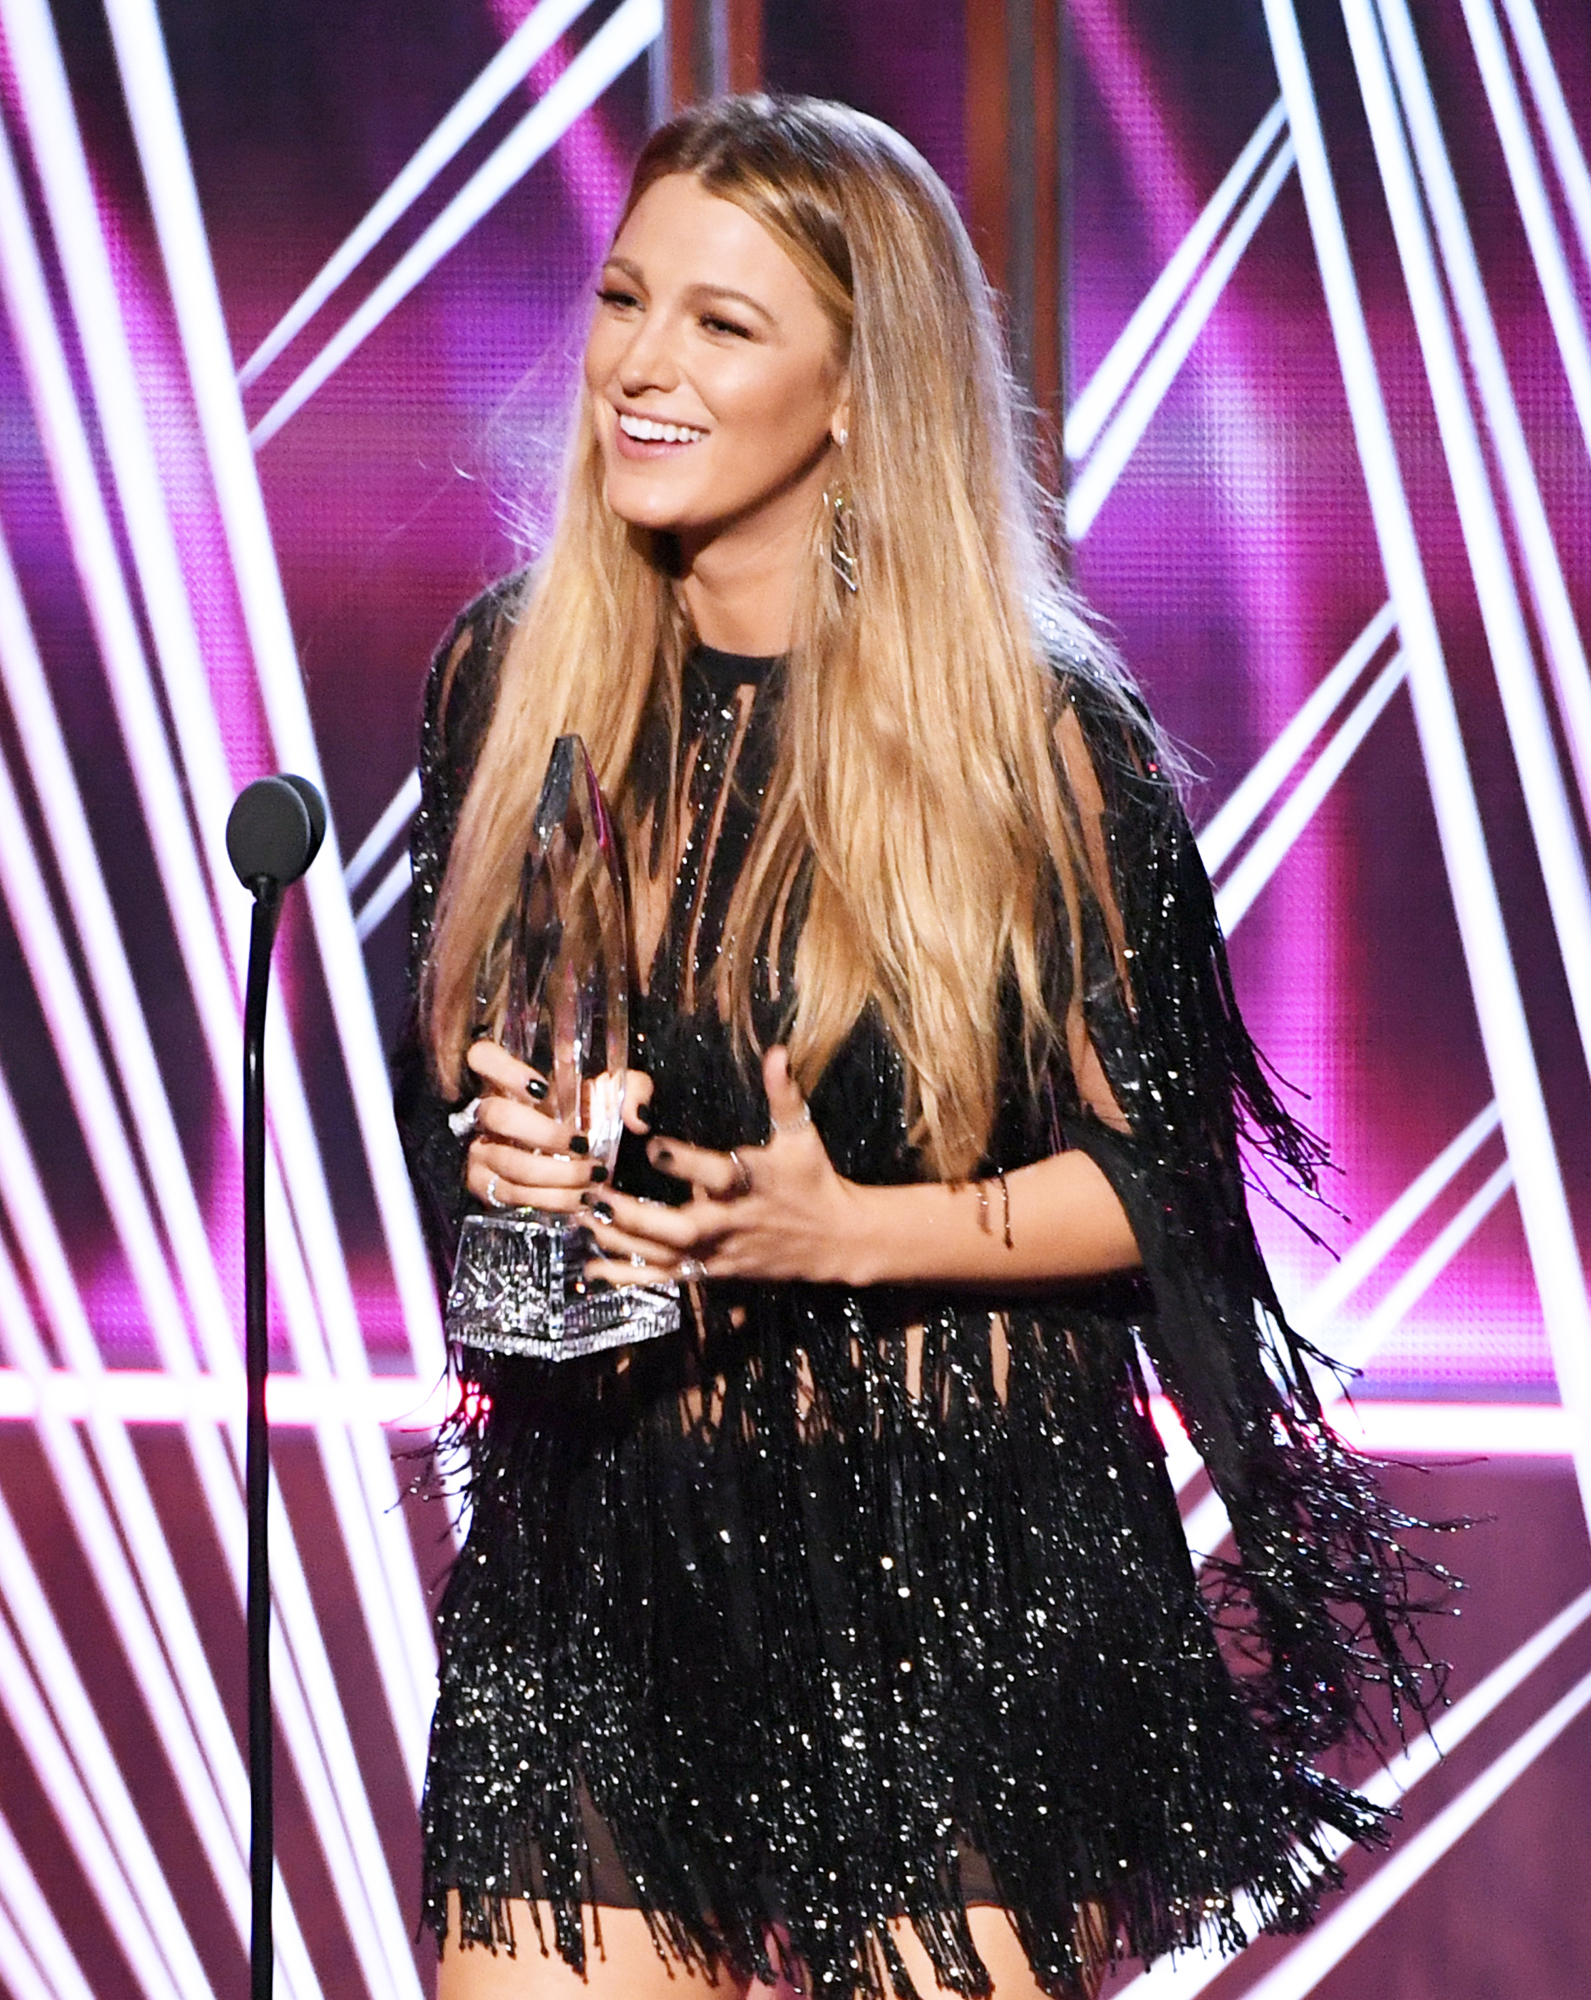 People's Choice Awards 2017 - Blake Lively Win - Lead 2017